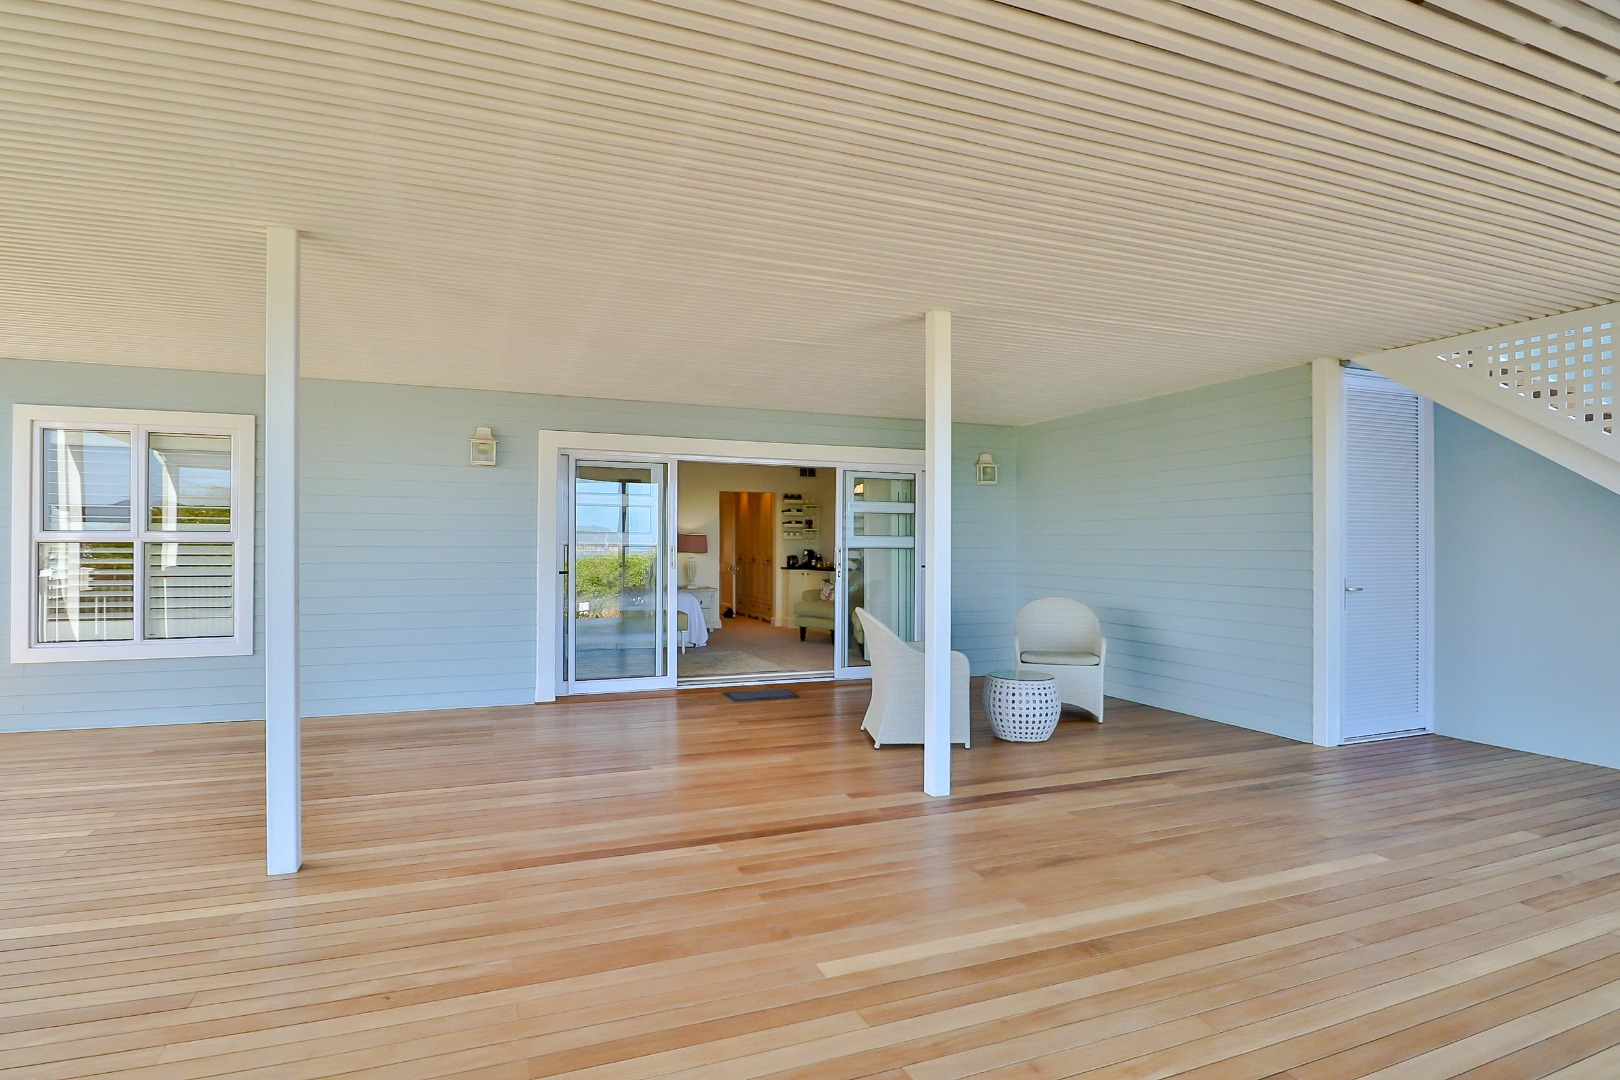 5 Bedroom House For Sale in Cola Beach